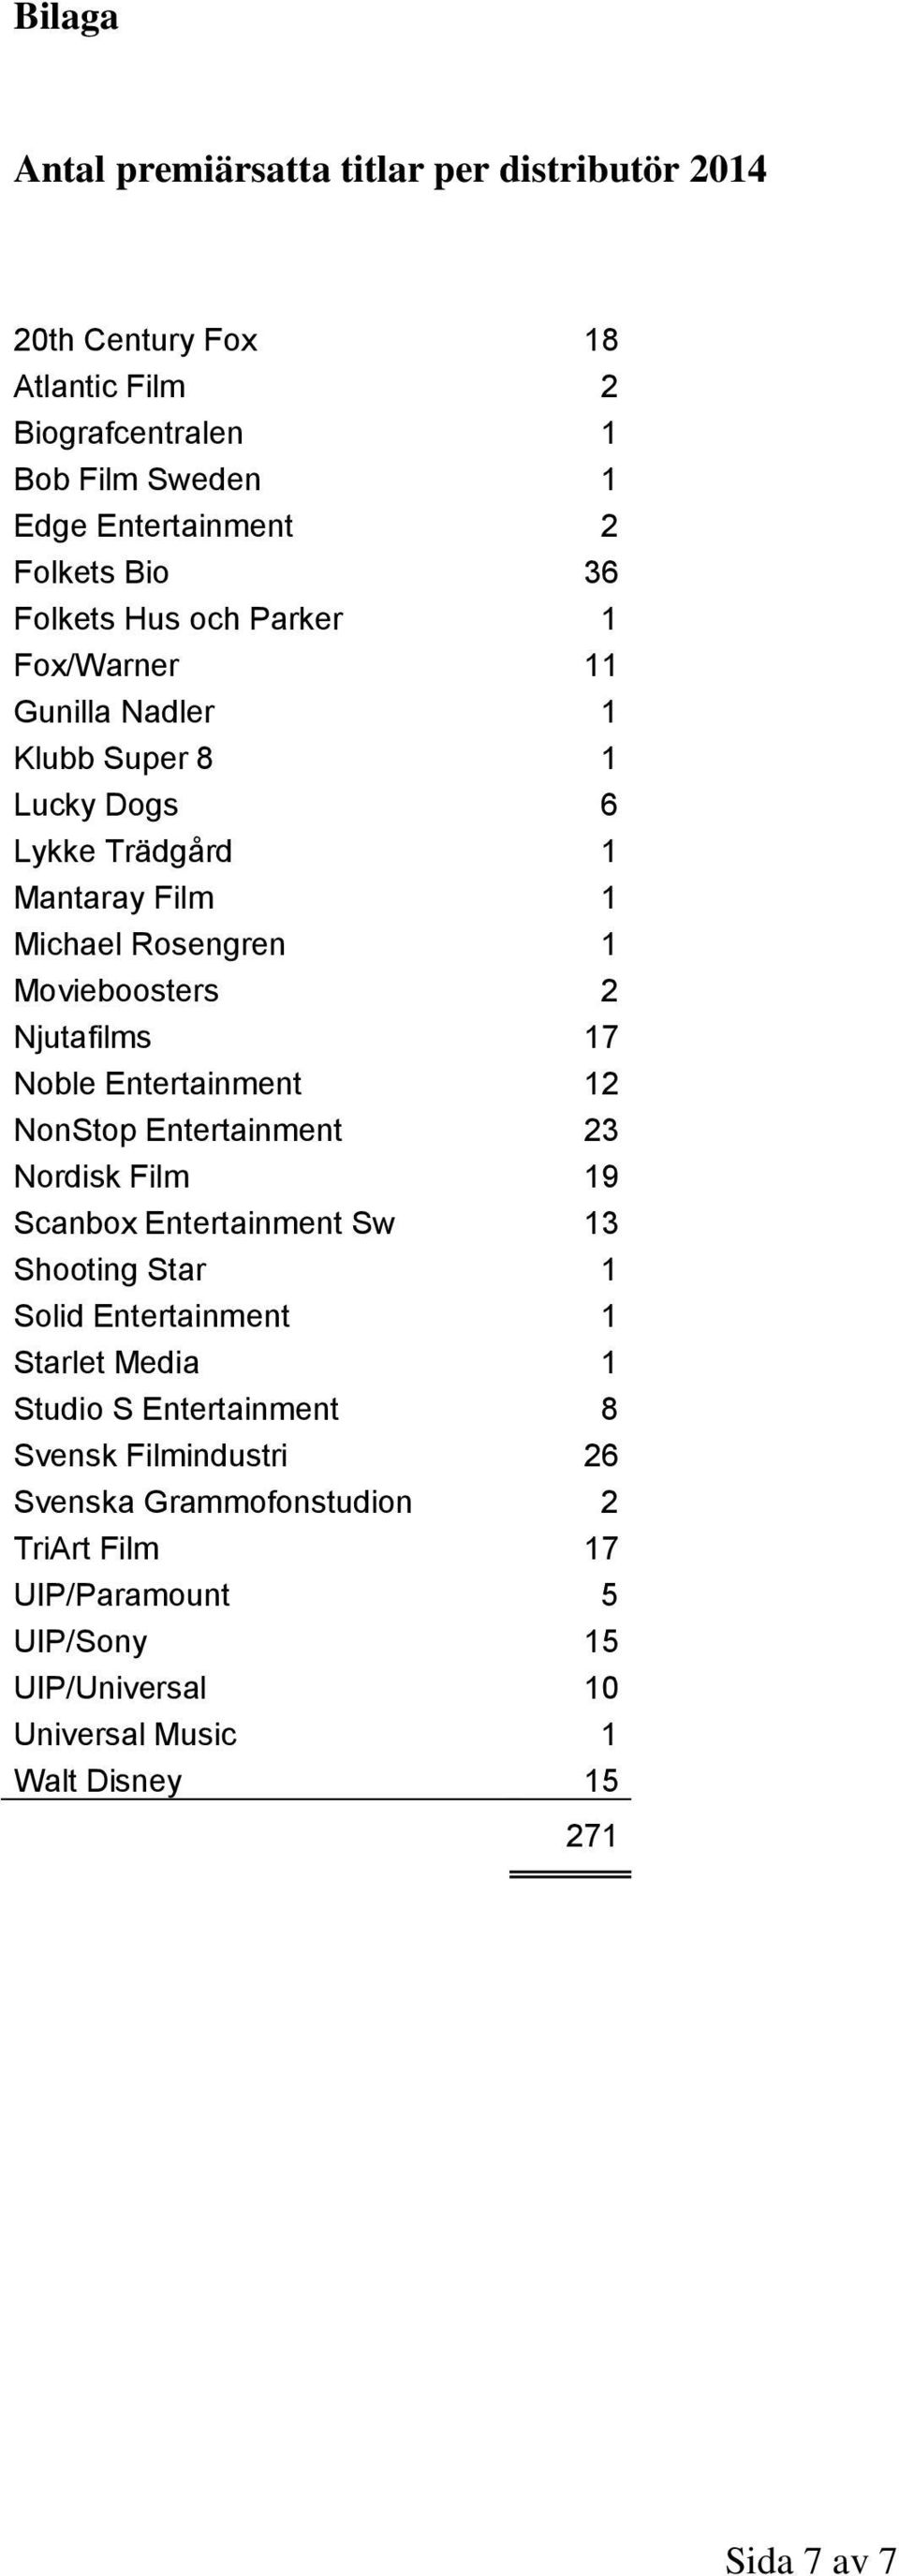 17 Noble Entertainment 12 NonStop Entertainment 23 Nordisk Film 19 Scanbox Entertainment Sw 13 Shooting Star 1 Solid Entertainment 1 Starlet Media 1 Studio S